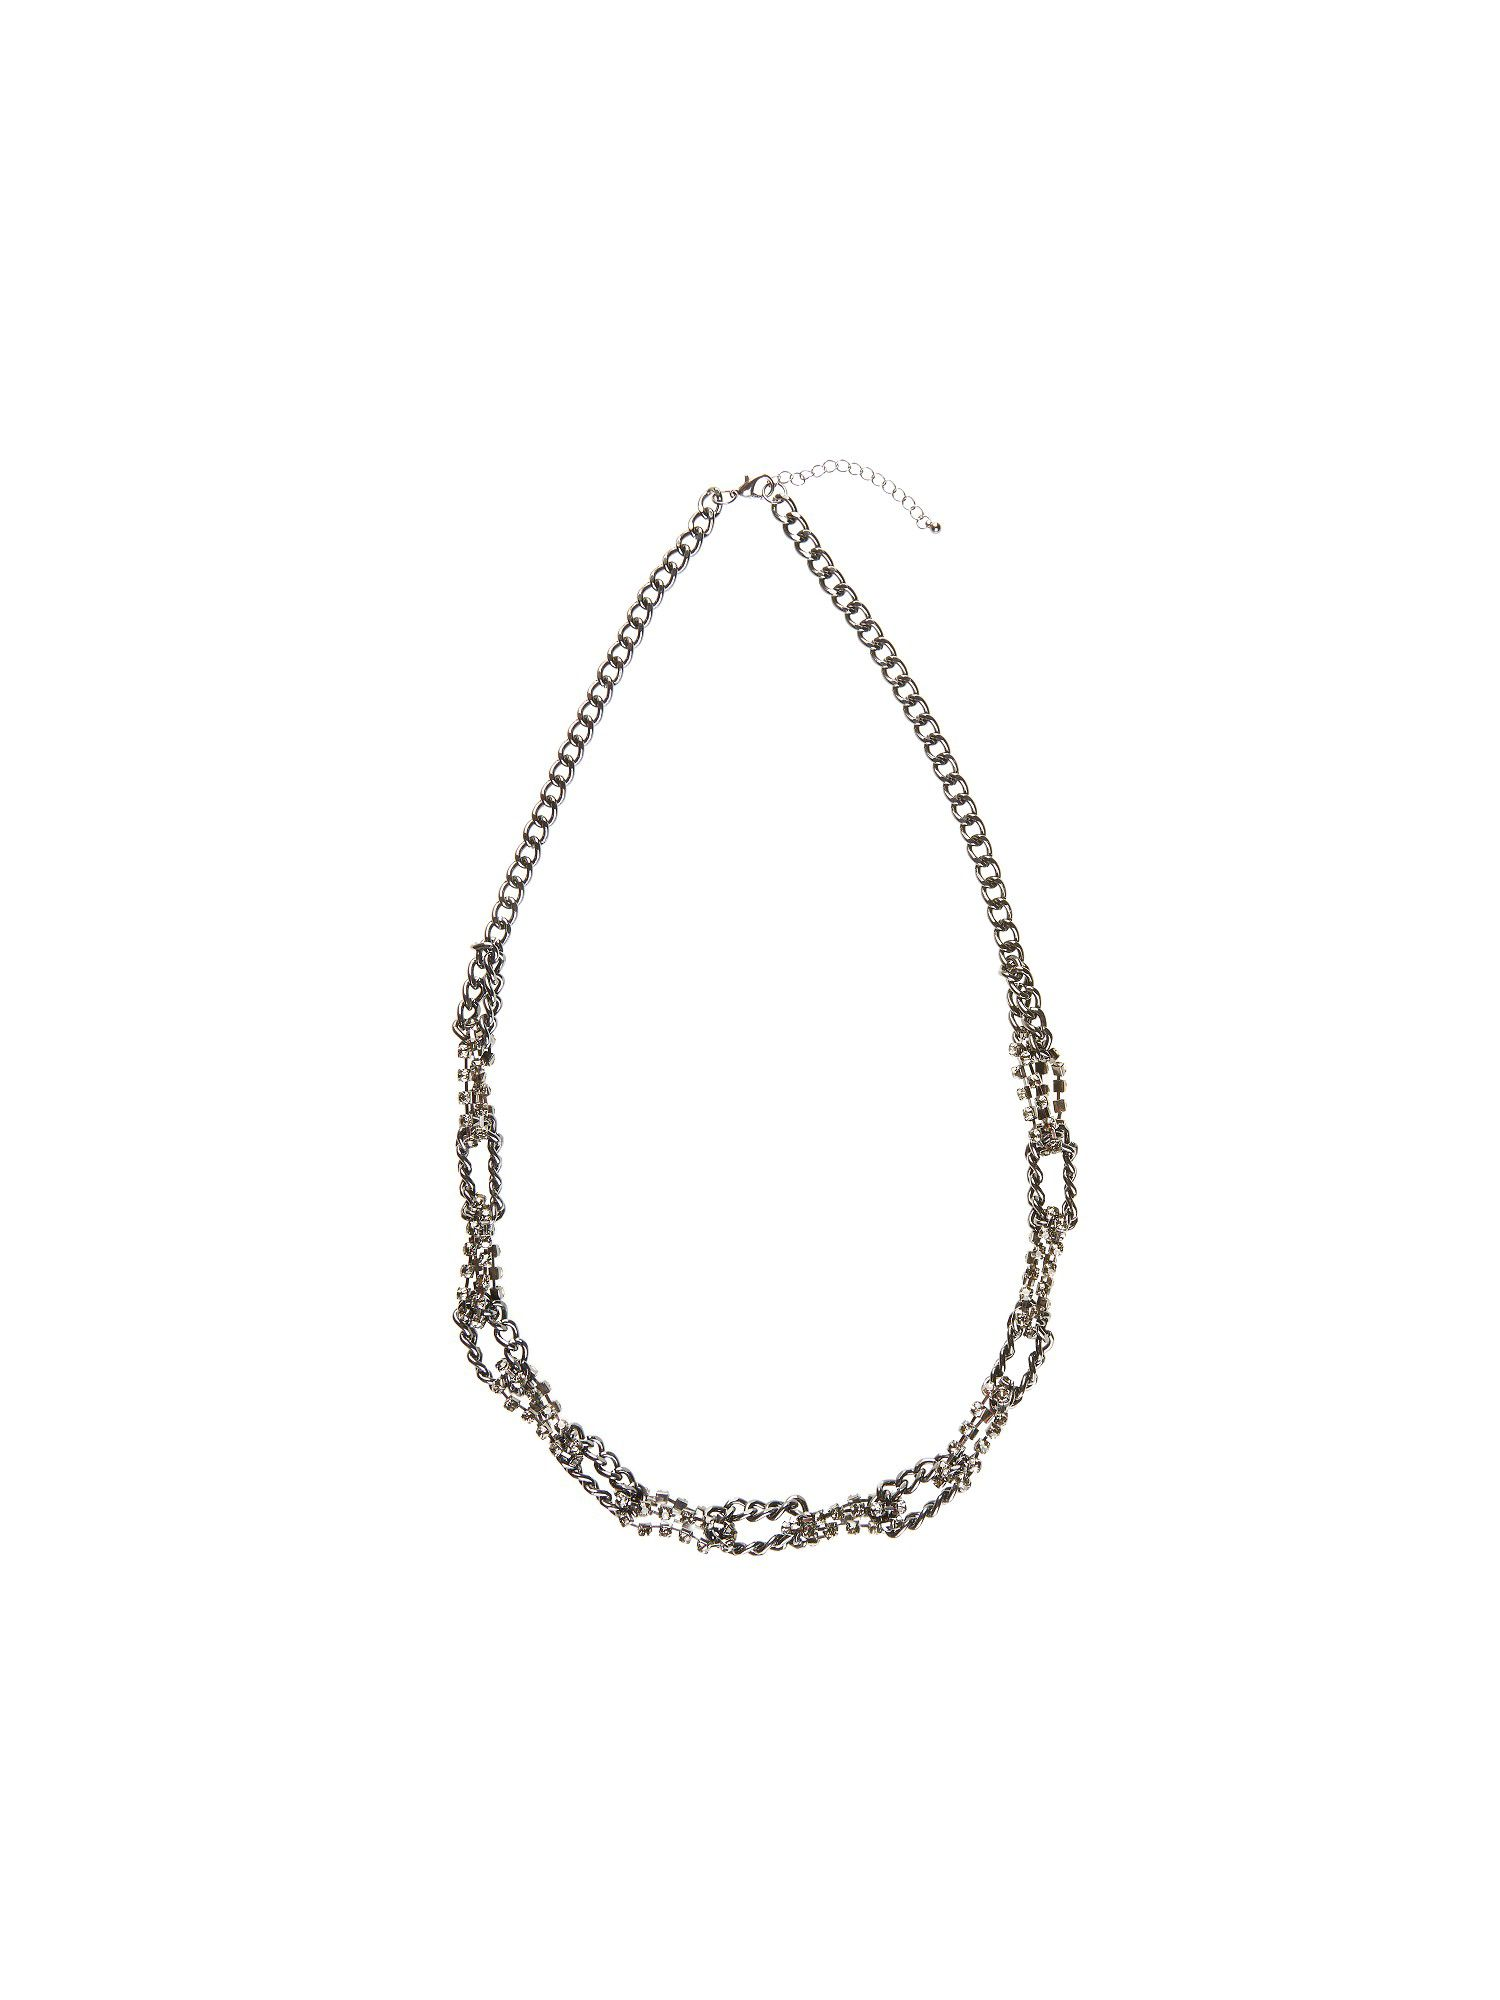 Sparkly chain link necklace